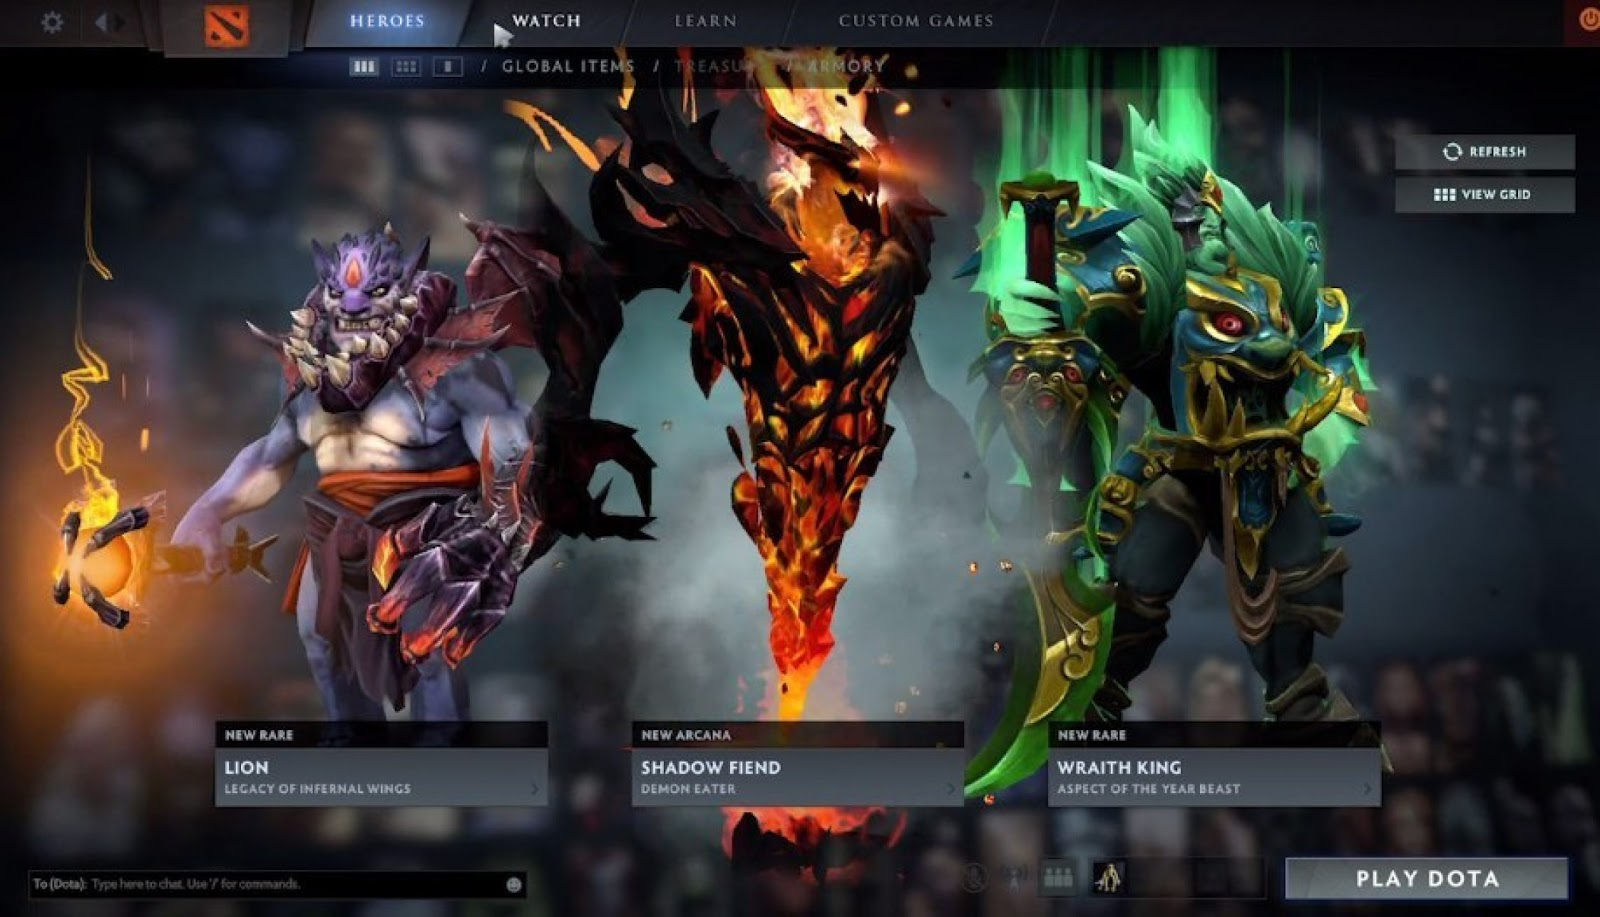 world e sports dota 2 heroes guide dota 2 heroes names dota 2